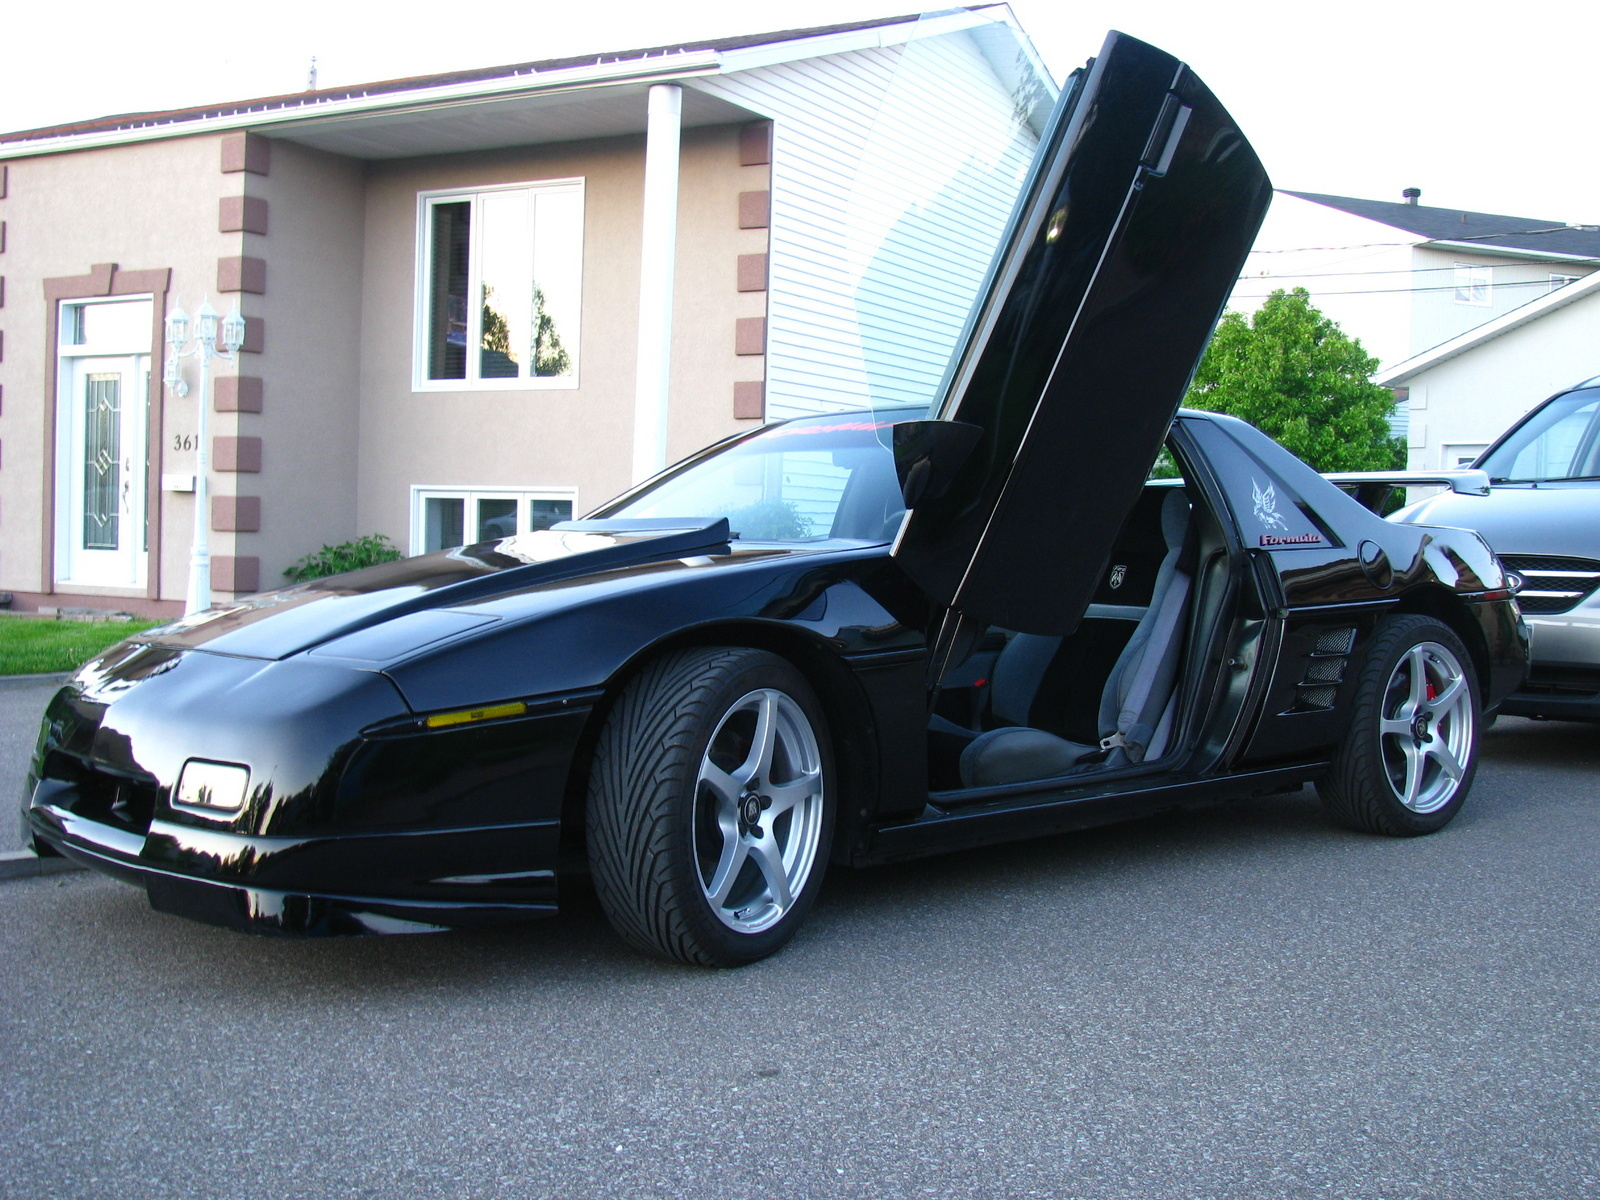 1988 Pontiac Fiero Test Drive Review Cargurus